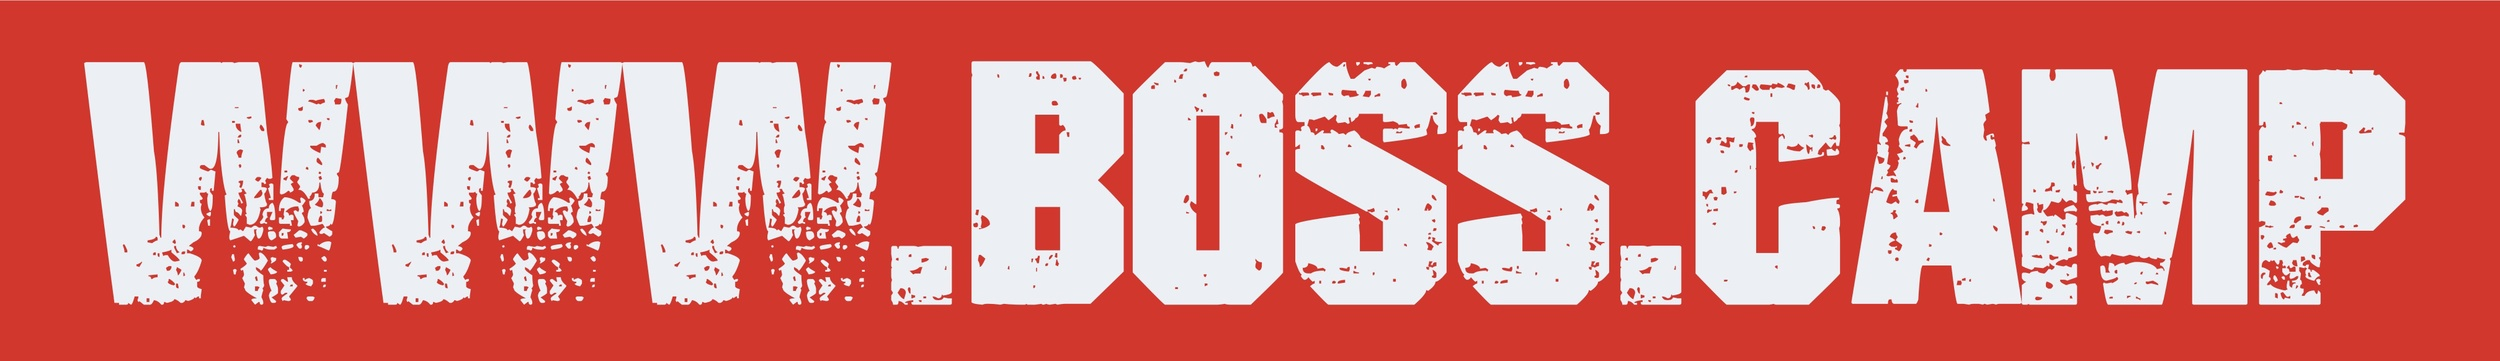 Discover proven techniques to improve employee performance and make managing easy at www.boss.camp Jpeg